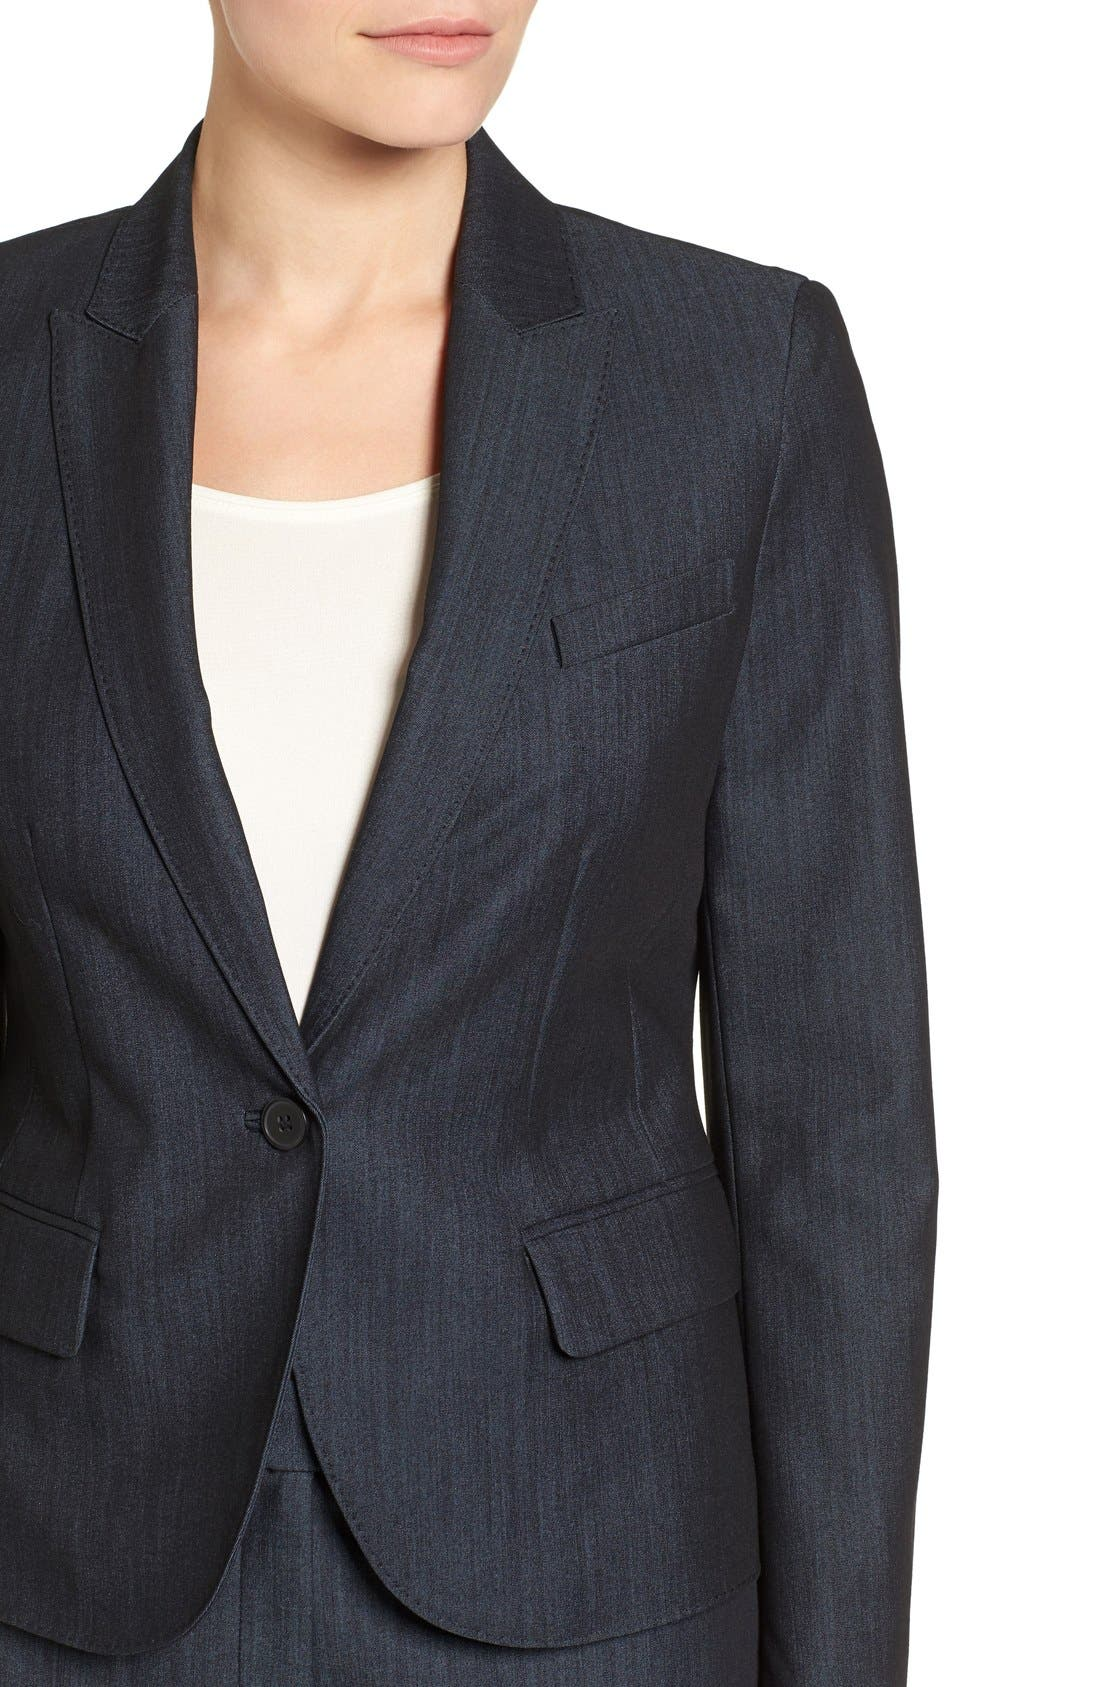 ANNE KLEIN, Twill One-Button Jacket, Alternate thumbnail 5, color, 400